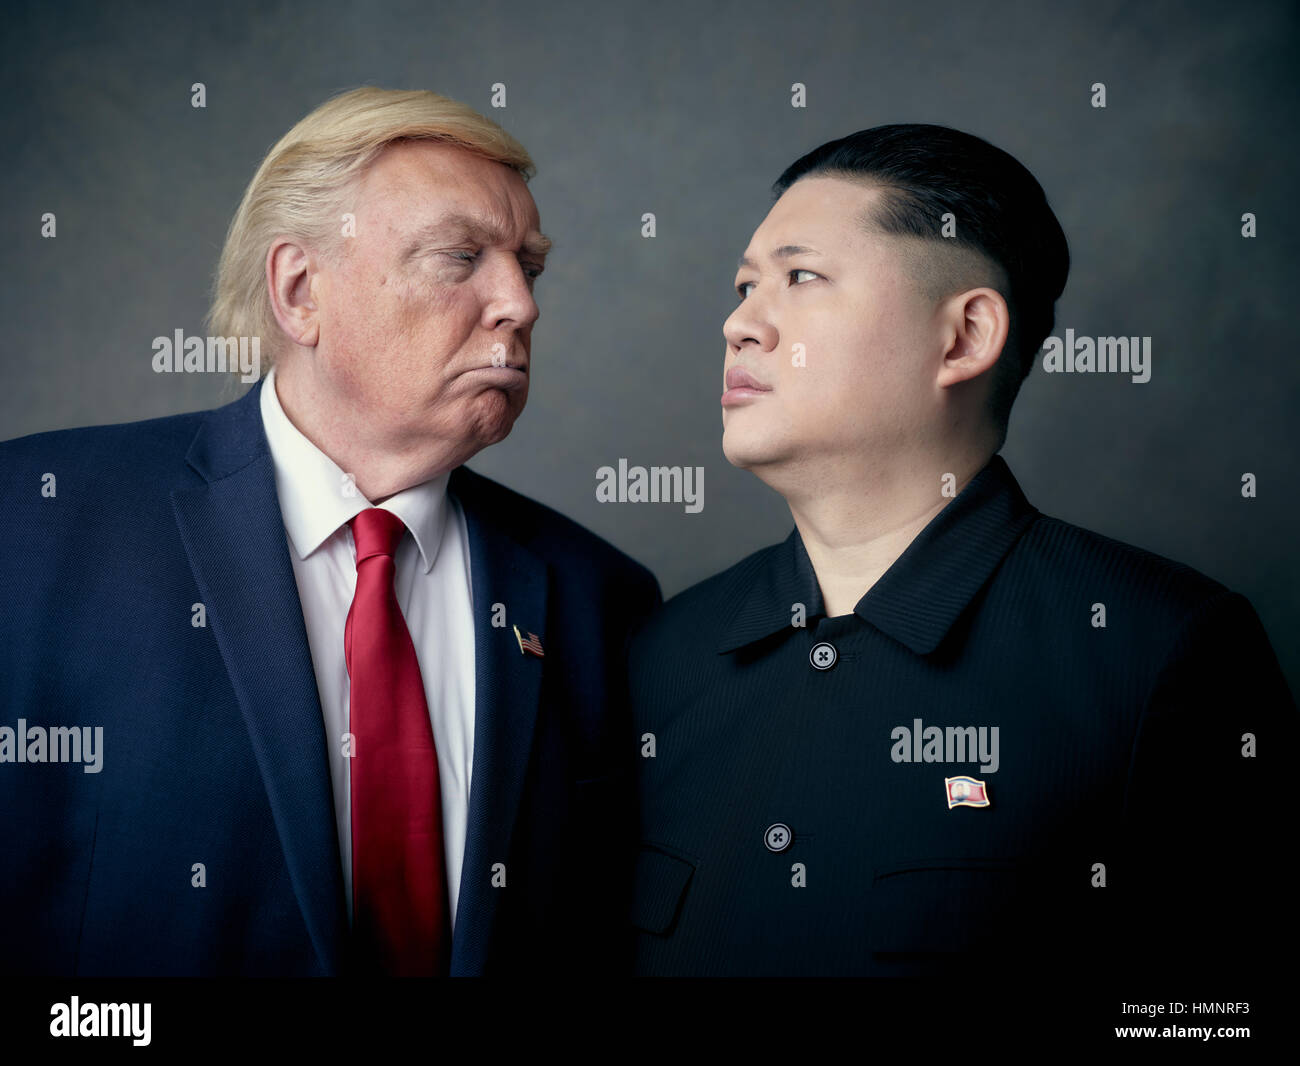 President Donald Trump lookalike and Supreme Leader of North Korea Kim Jong-Un lookalike portrait shoot.  An unlikely Stock Photo